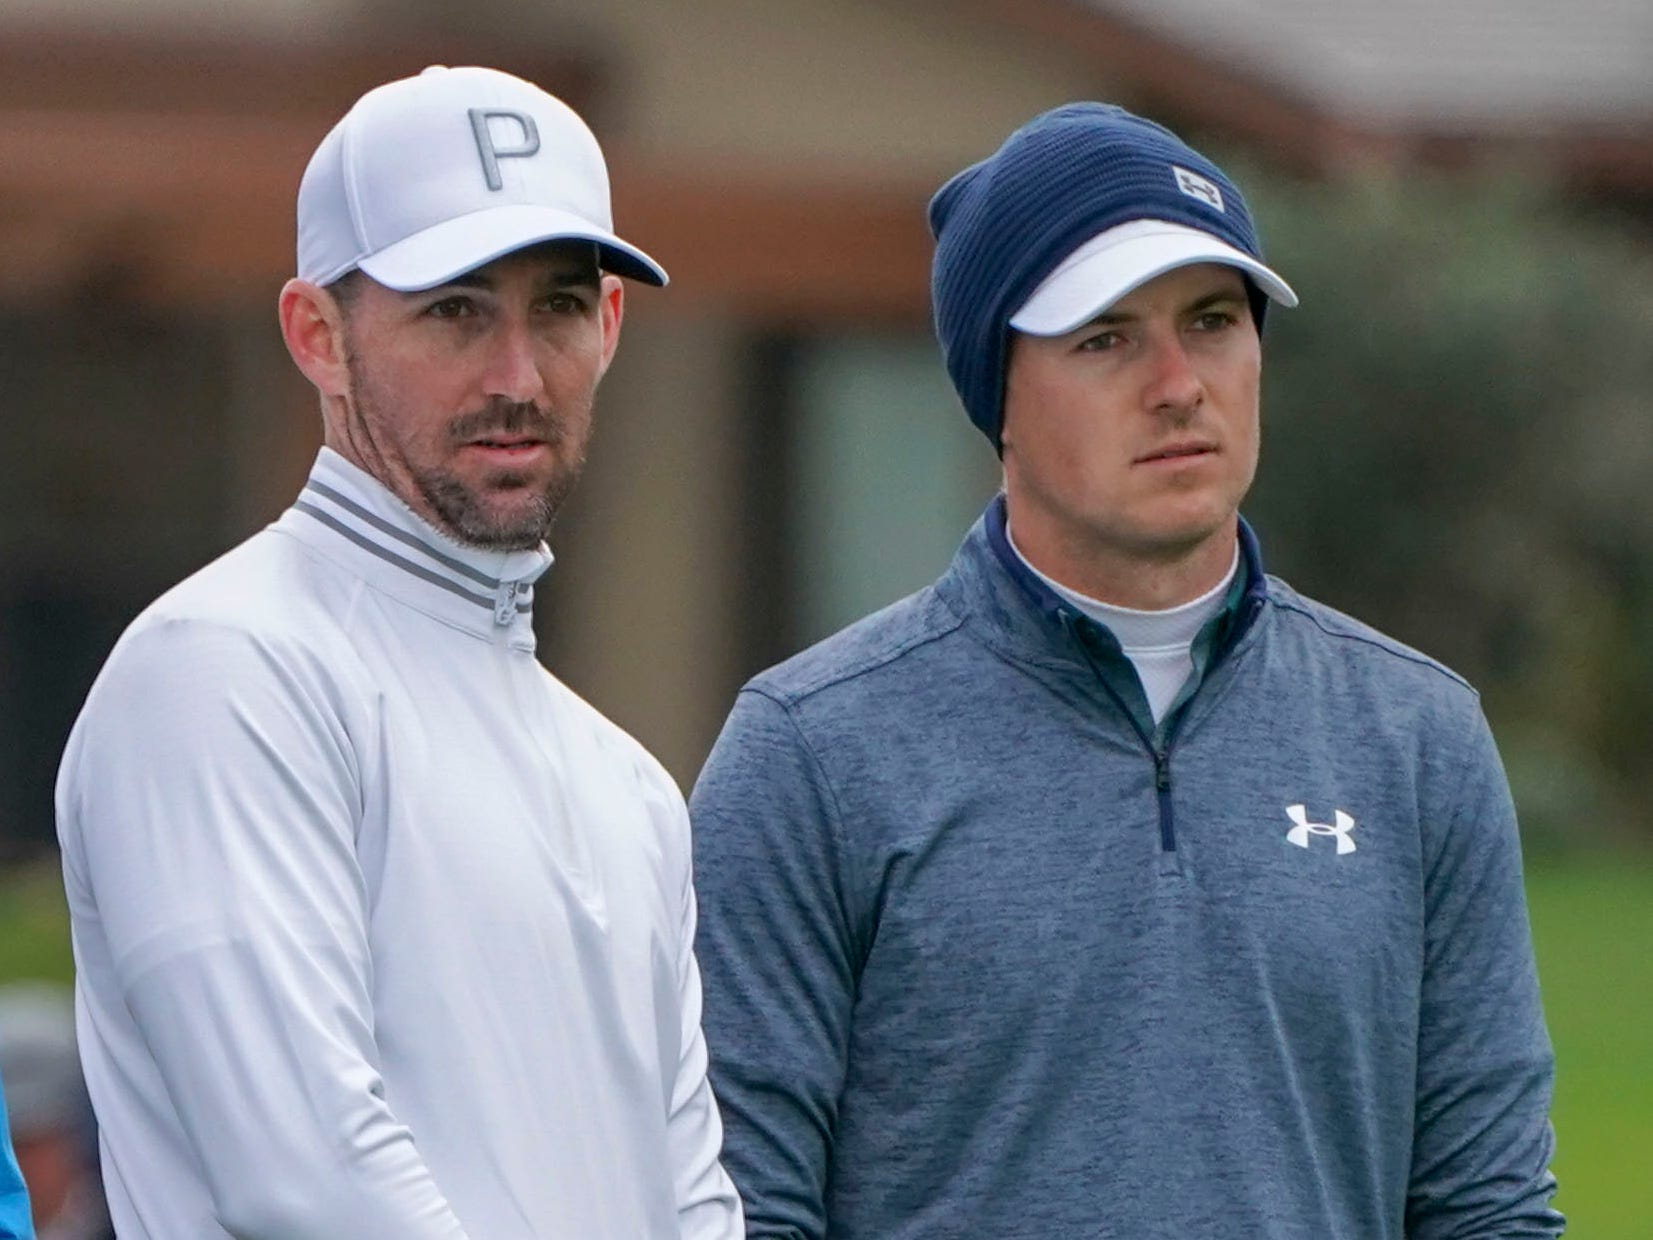 Singer Jake Owen (left) and Jordan Spieth (right) stand on the first hole during the final round of the AT&T Pebble Beach Pro-Am.